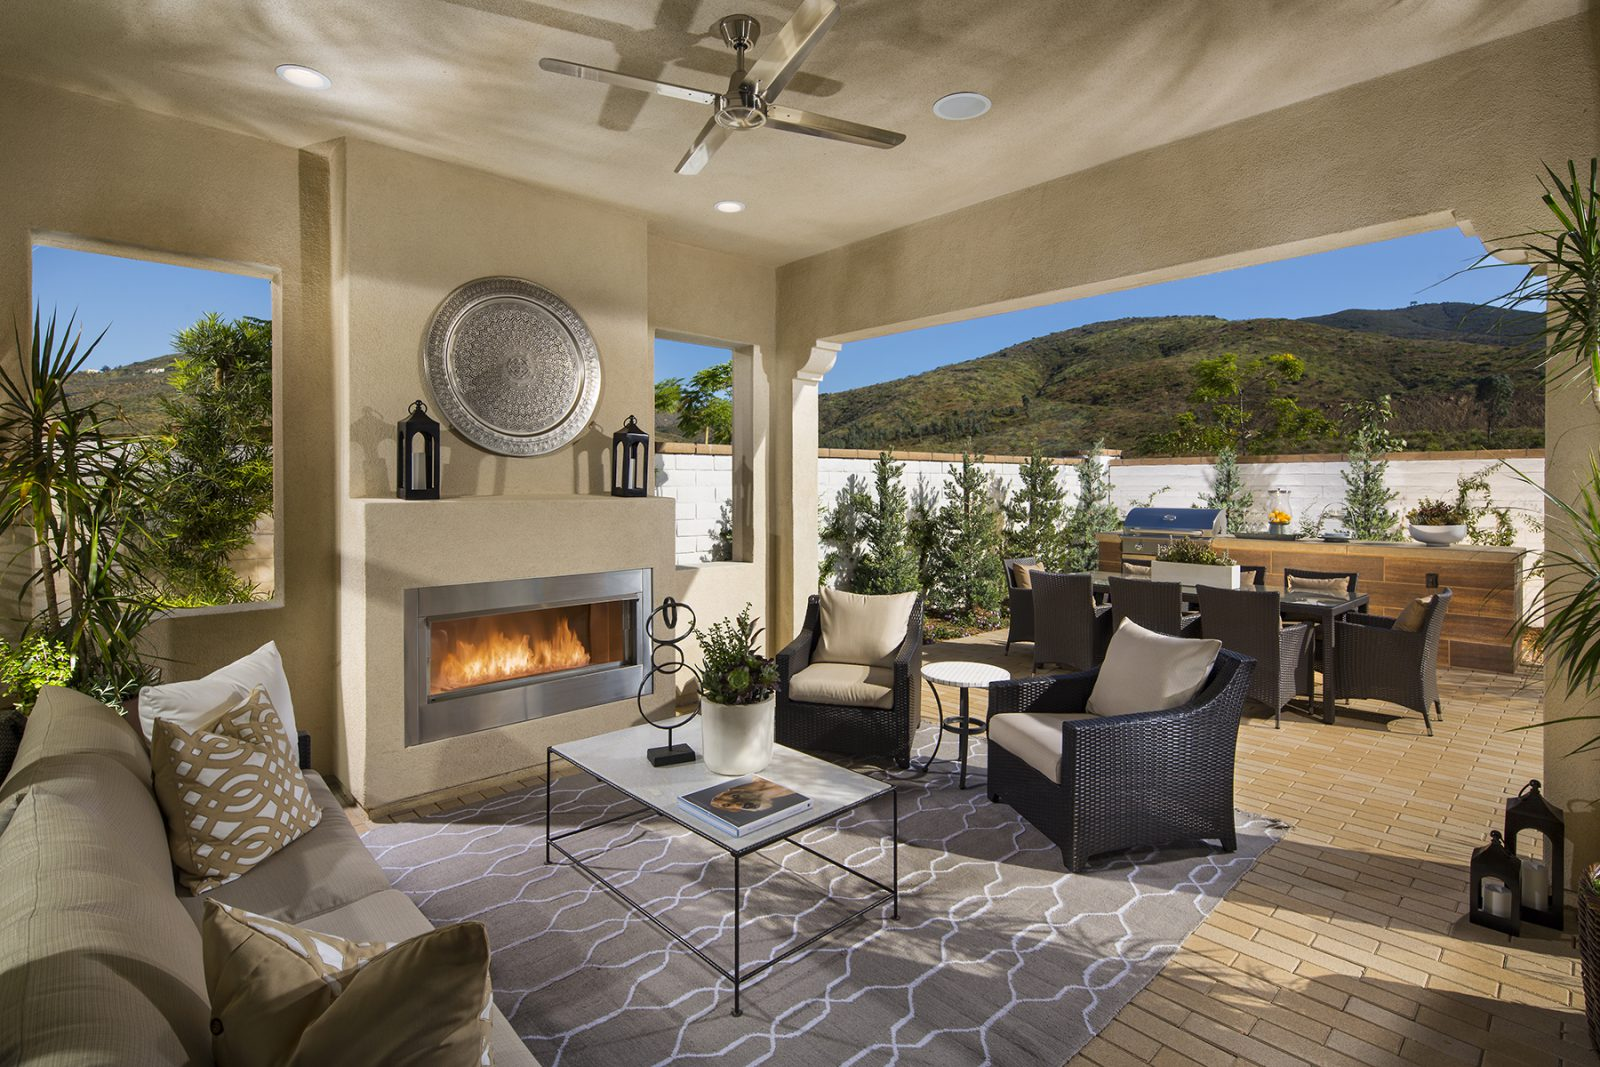 San Diego CA Homes with Outdoor Room